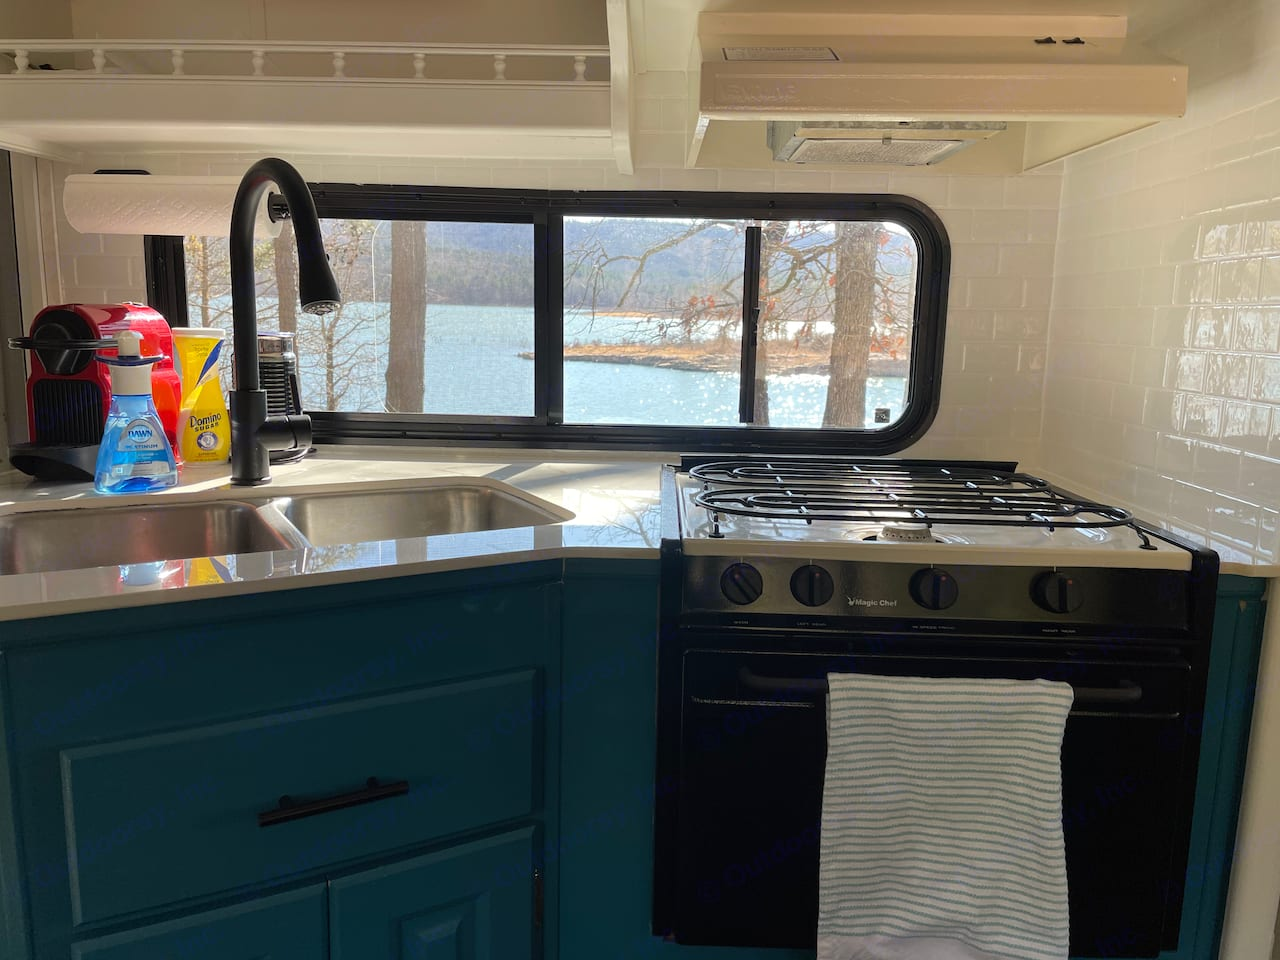 View of the lake from renovated kitchen, showing the Nespresso coffee machine.. Coachmen Santara 2001